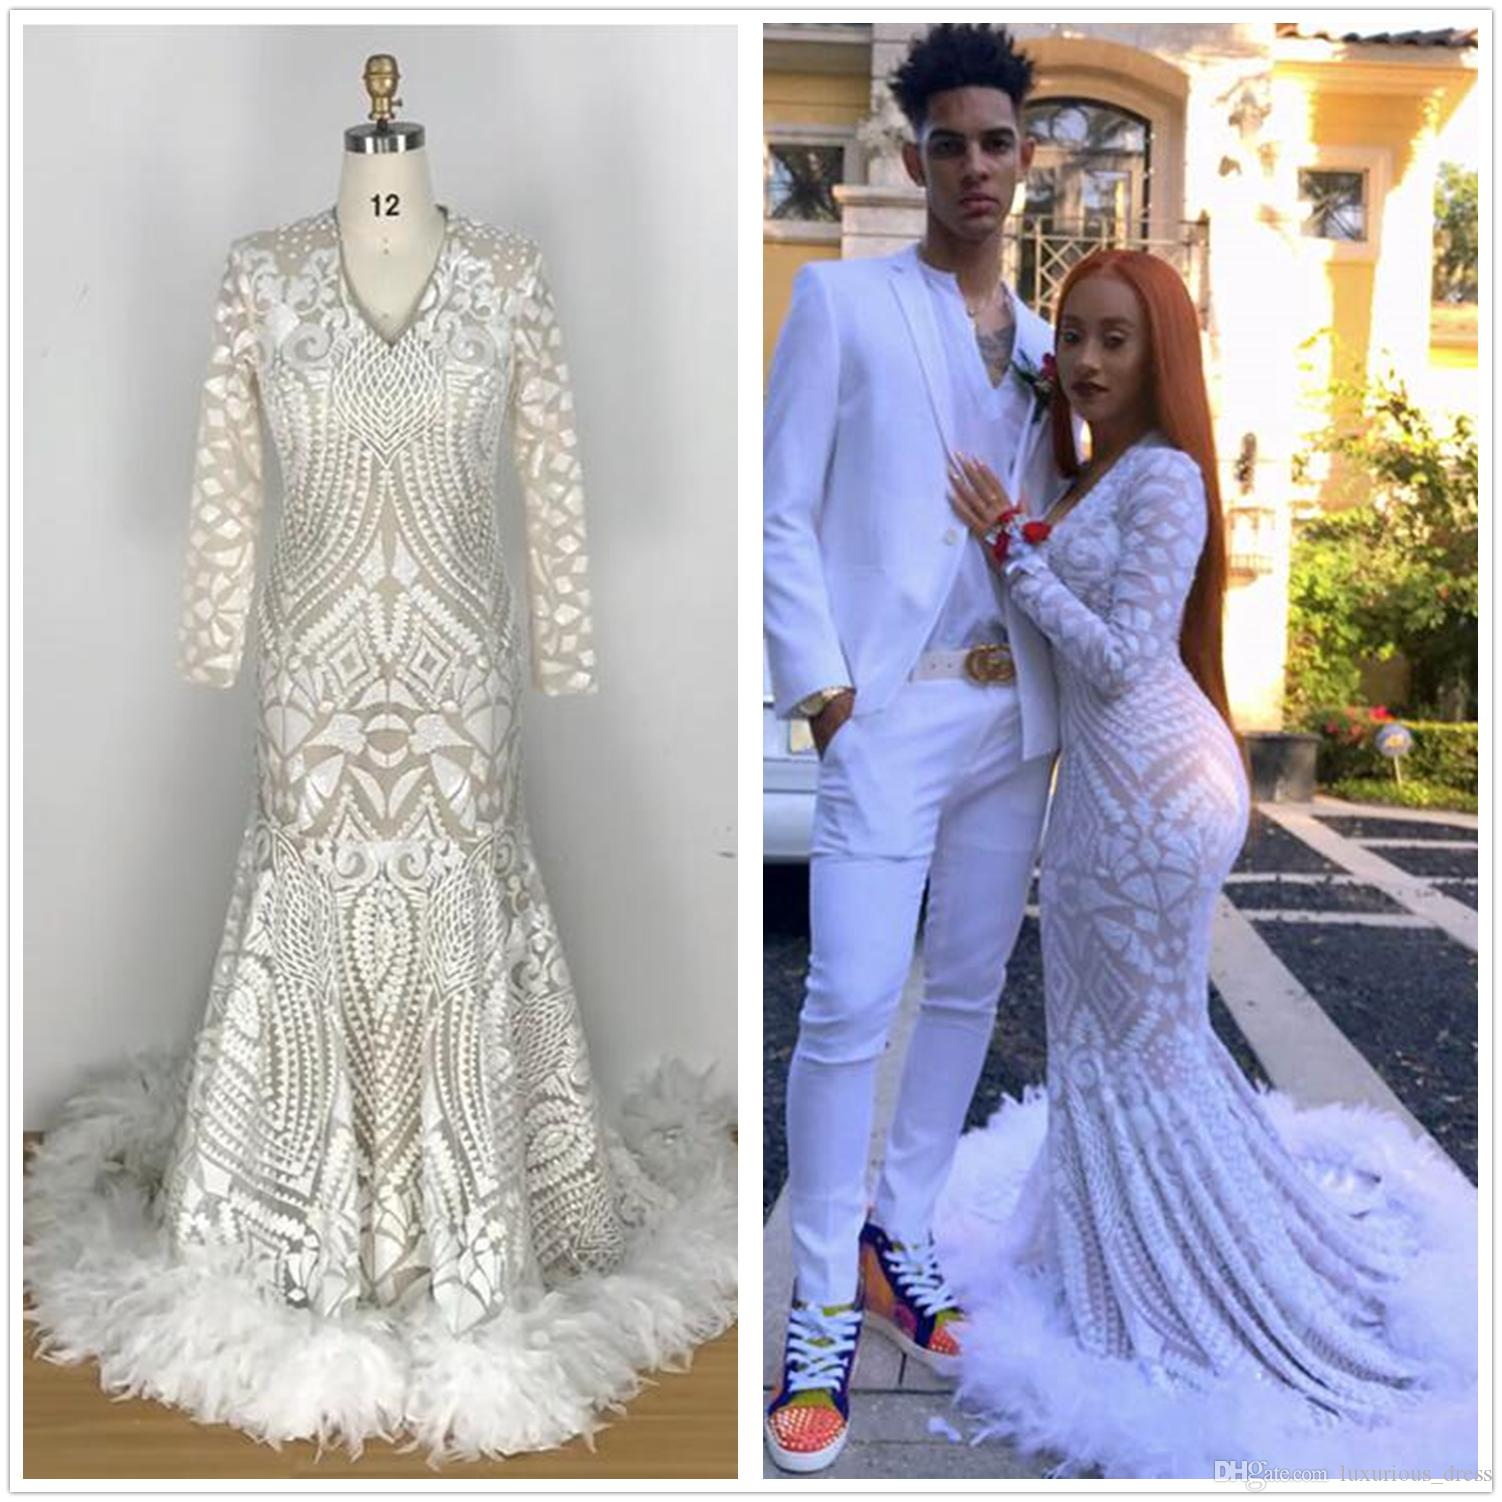 6d39f6e525b00 Long Elegant Prom Dresses 2019 Sexy Mermaid V-neck Long Sleeve Sequin  African Feather White Ladies Evening Dresses robe de soiree